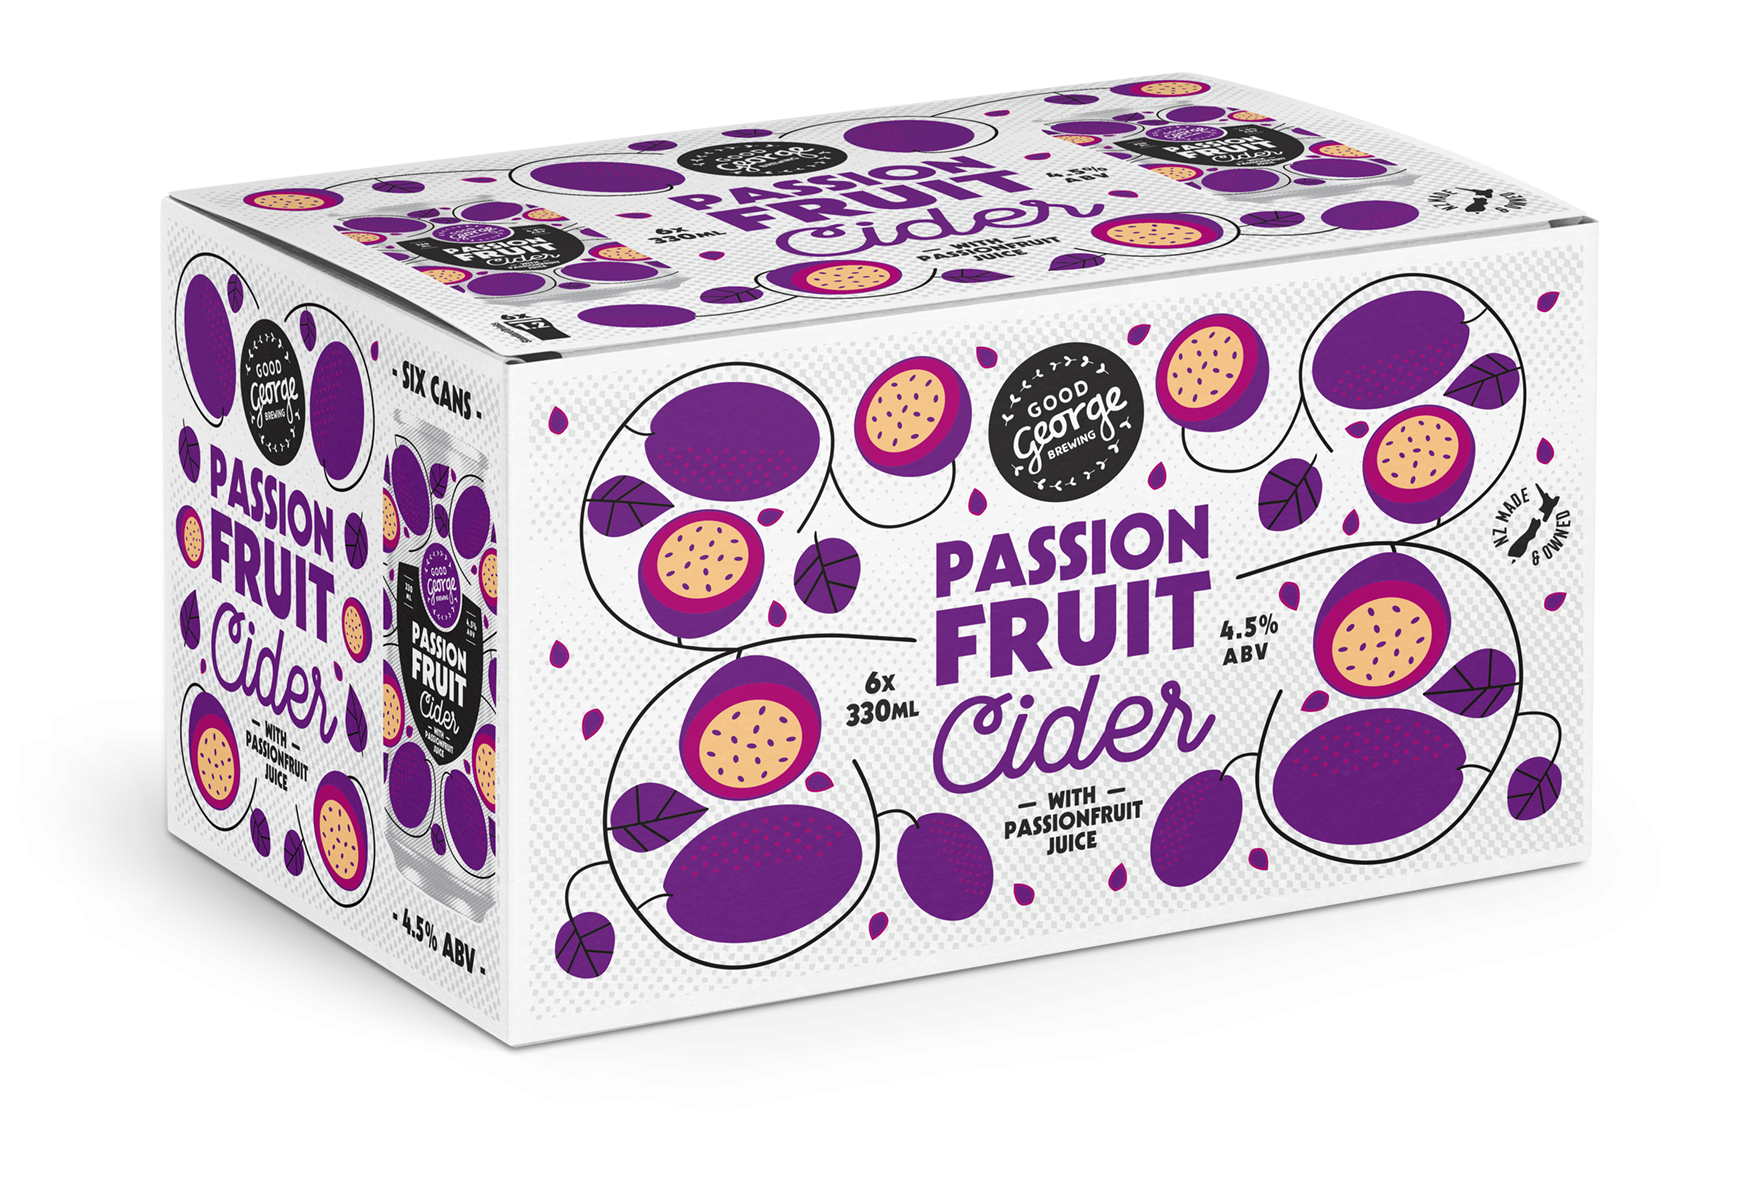 Good George Passionfruit Cider 6 Pack Cans